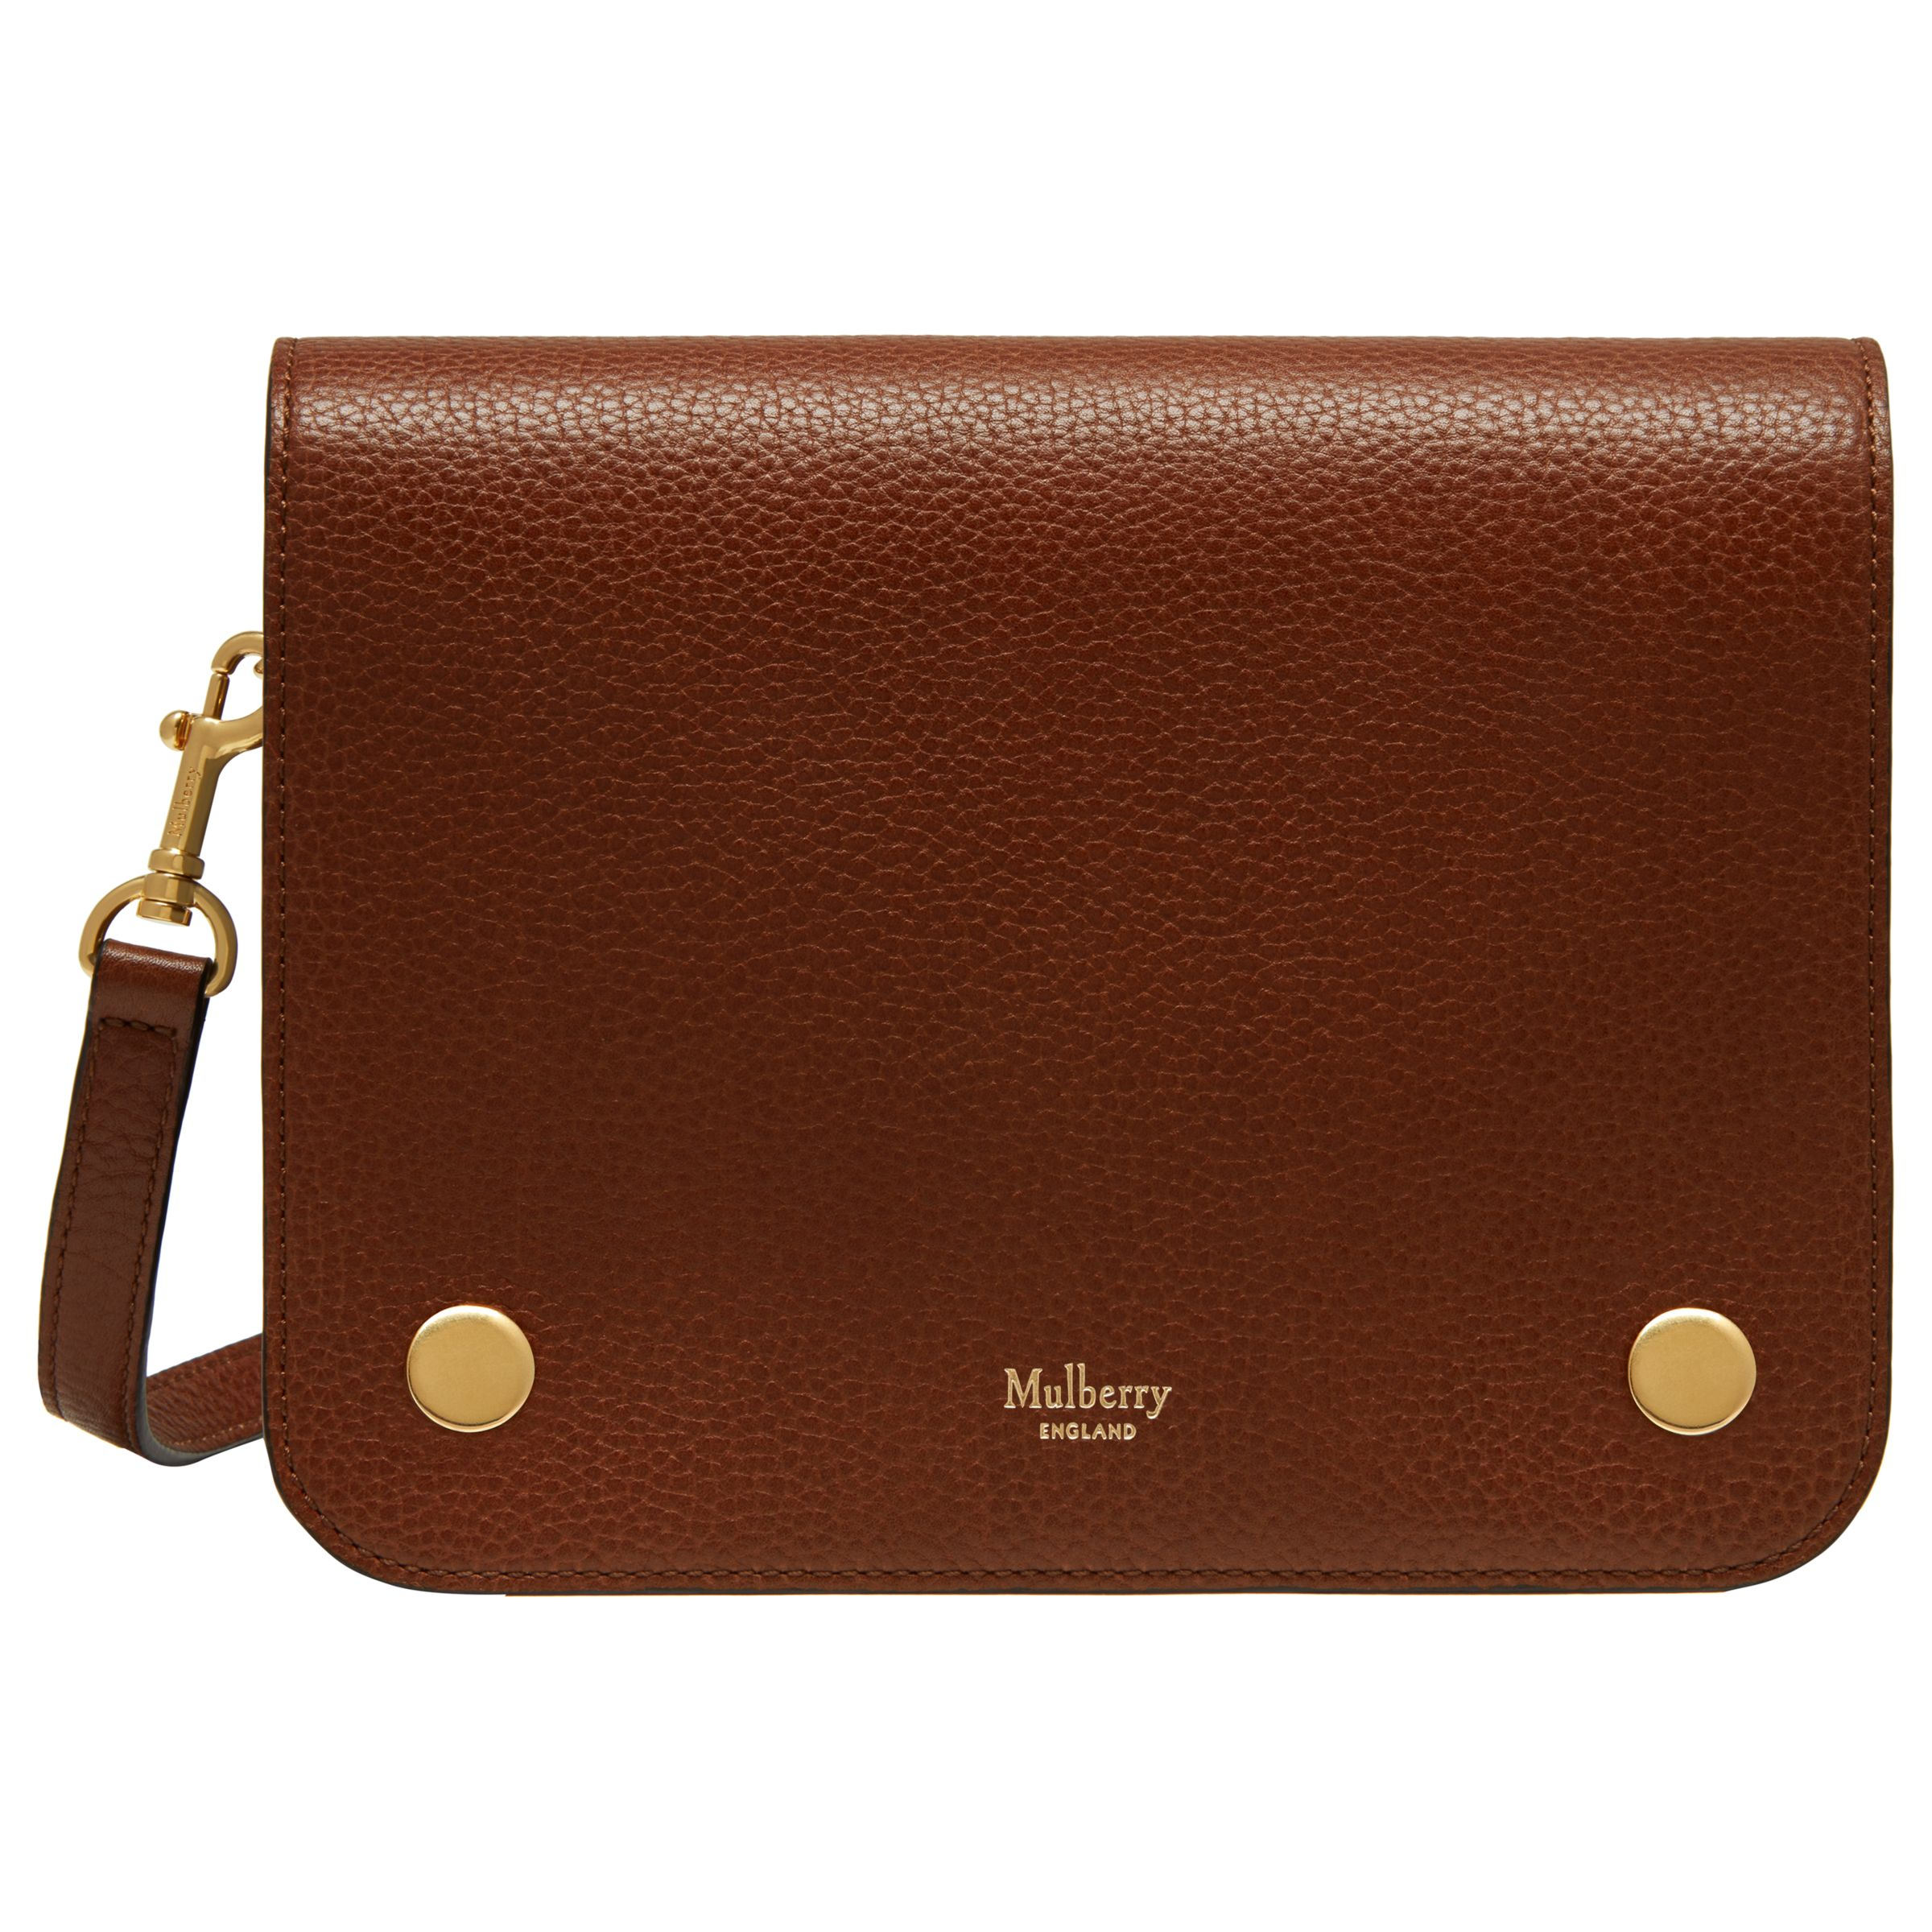 8a98ef60a76 ... italy mulberry clifton small classic grain cross body bag at john lewis  partners 8967f e2871